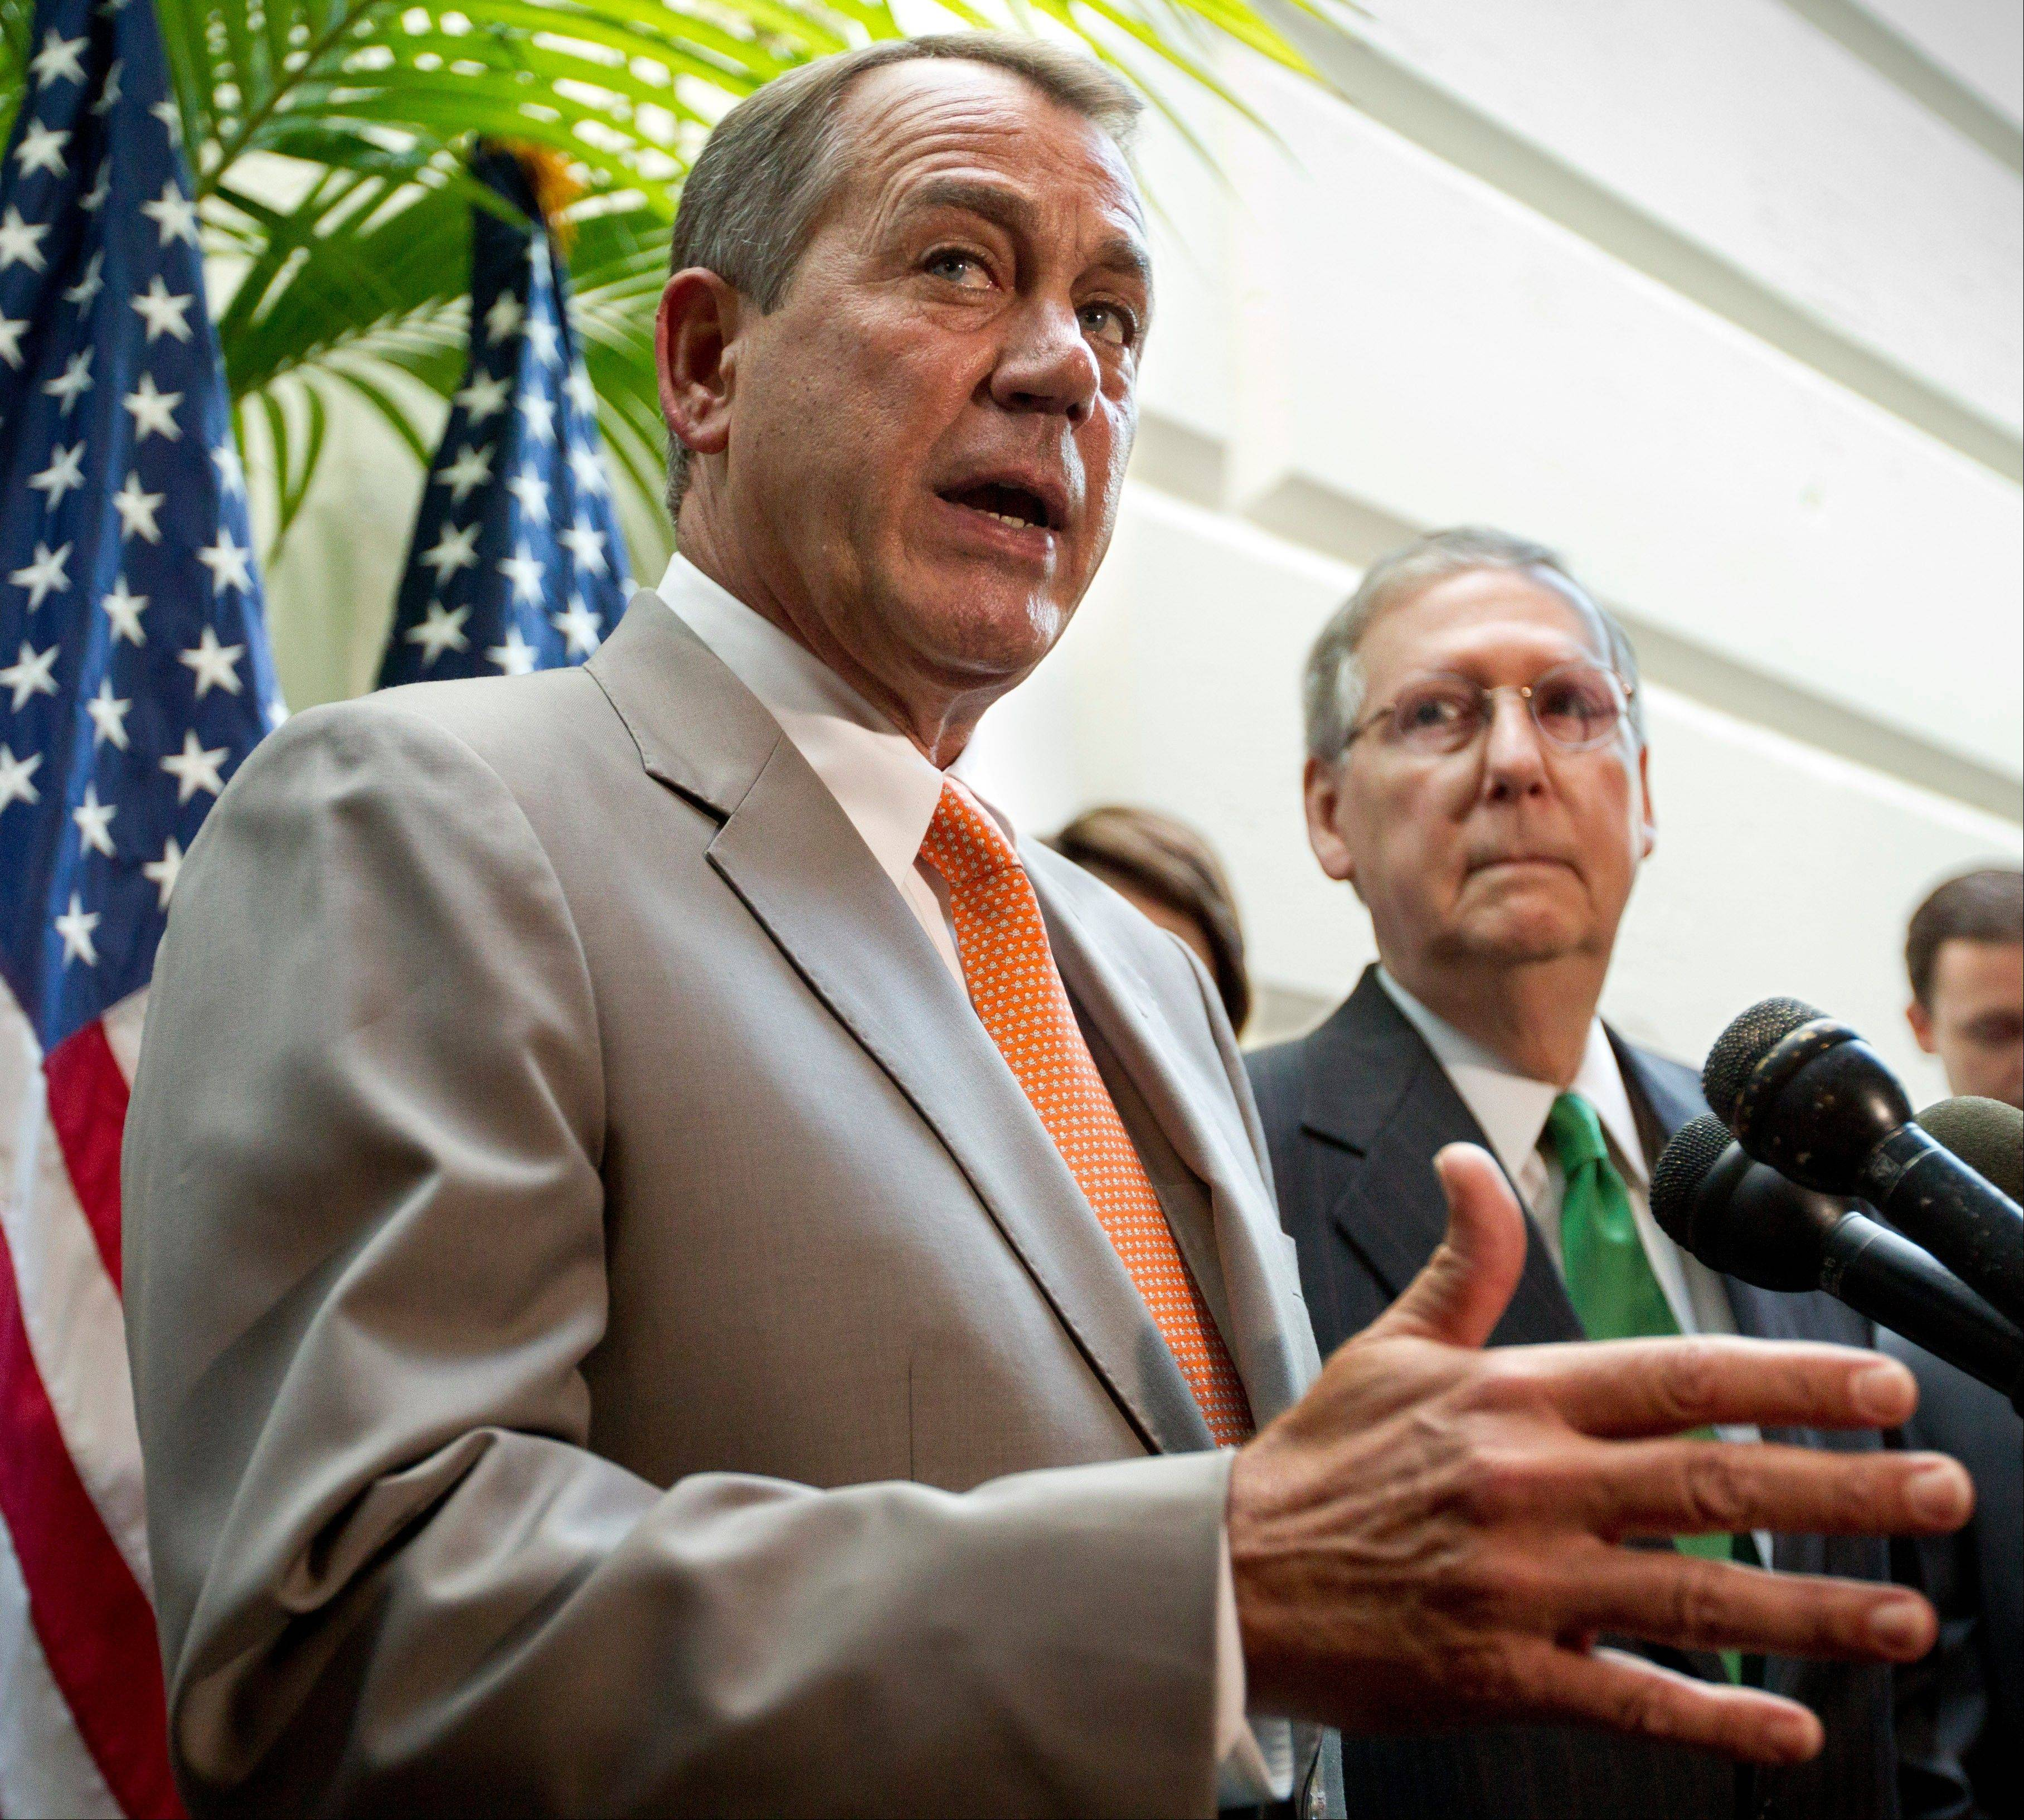 House Speaker John Boehner of Ohio and Senate Republican Leader Mitch McConnell of Kentucky have said they won't agree to a debt-limit extension without an accord to cut spending.